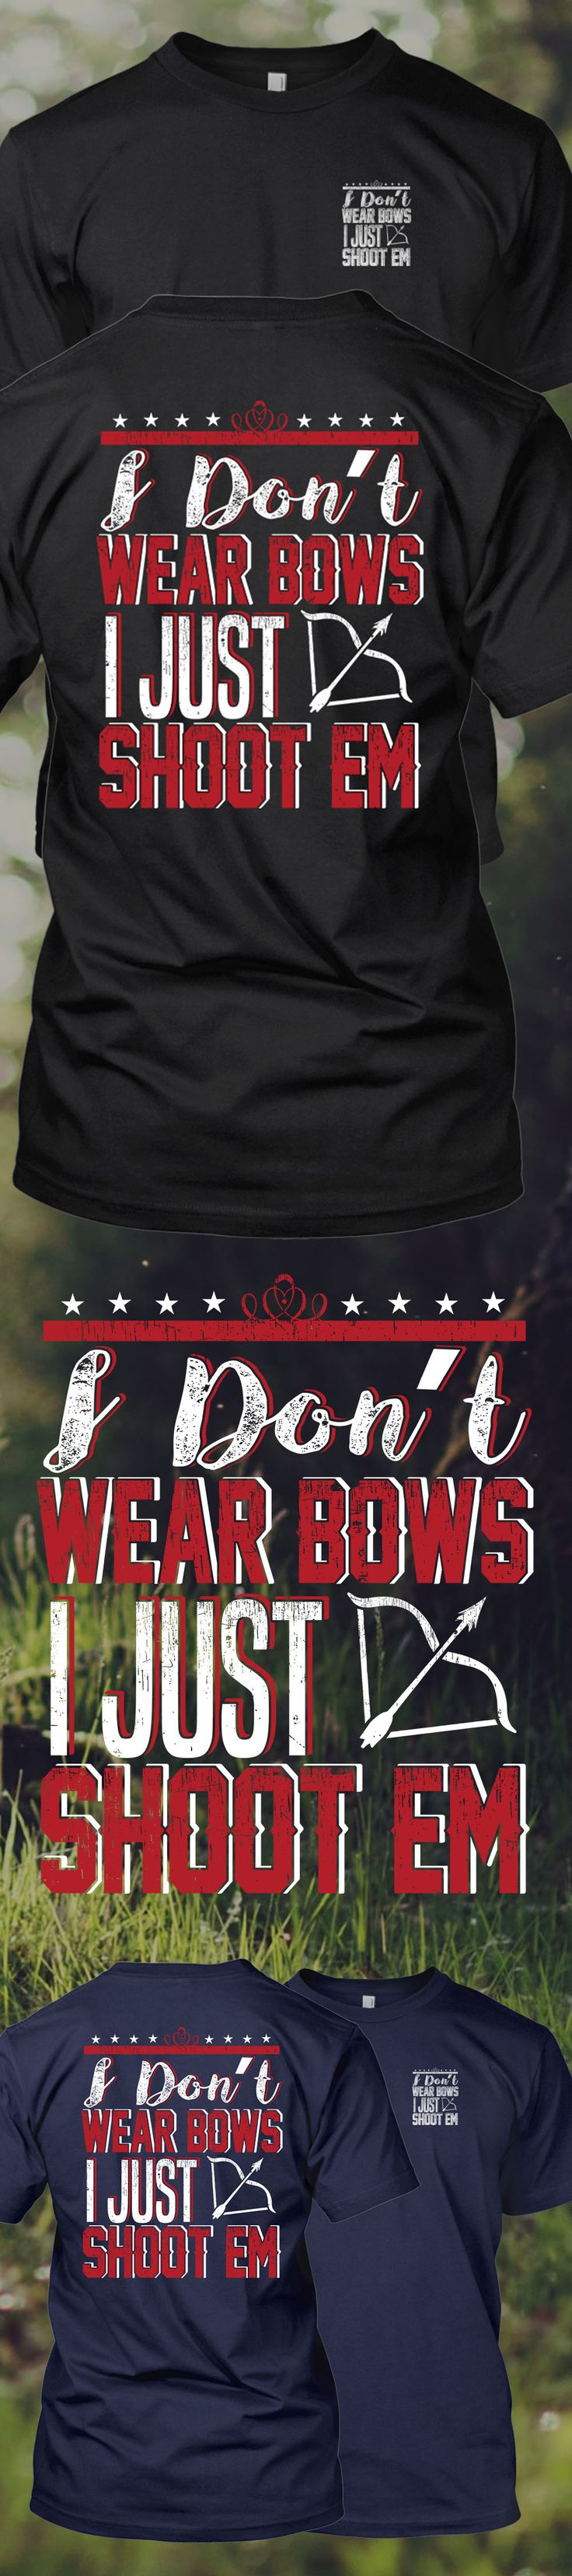 Do you wear bows?! Check out this awesome I shoot Bows t-shirt you will not find anywhere else. Not sold in stores! Grab yours or gift it to a friend, you will both love it